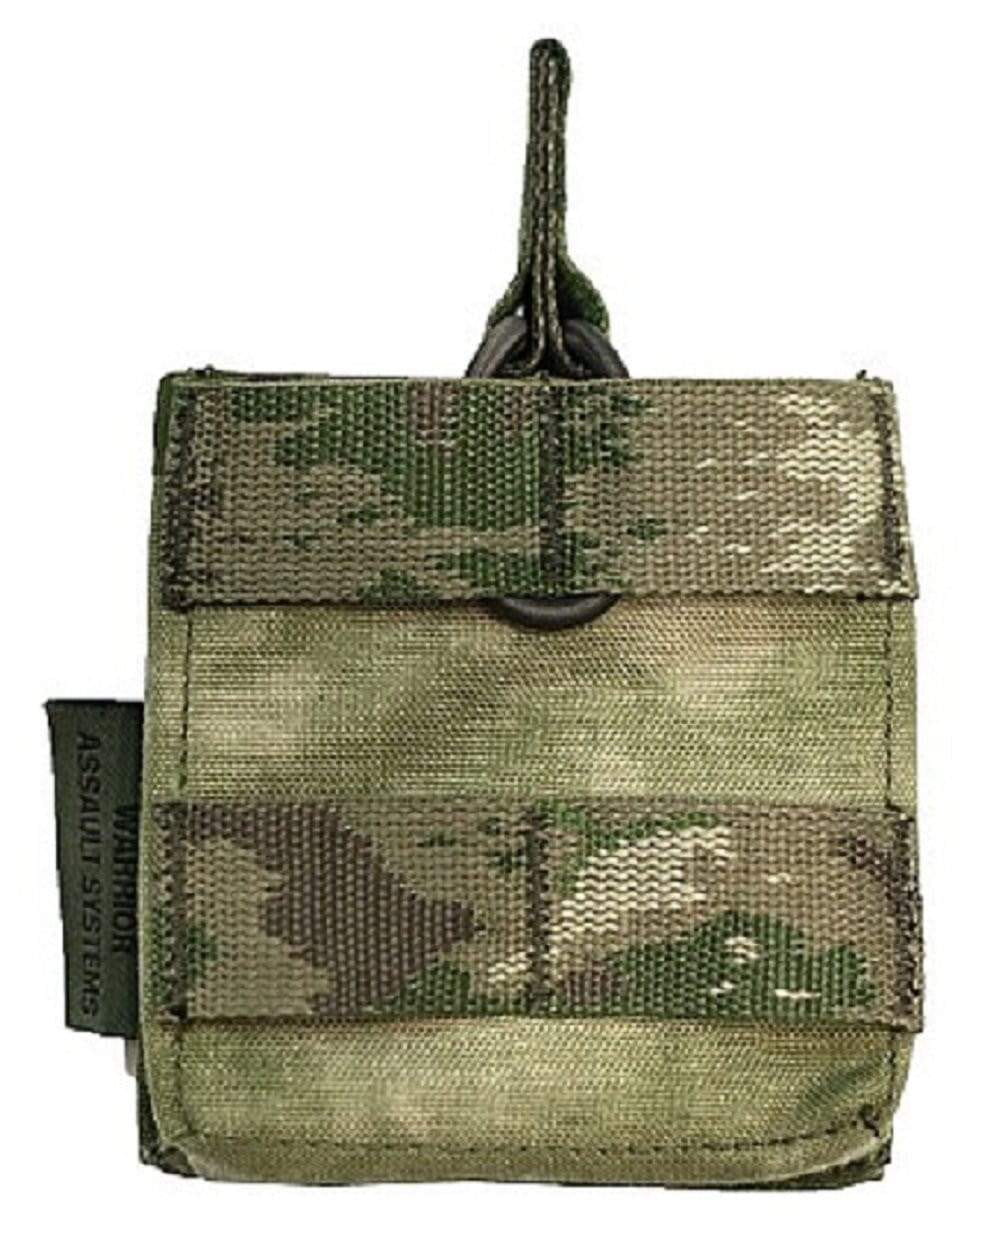 Warrior Assault Systems Single Mag Pouch with Snap cal. 308 - CHK-SHIELD | Outdoor Army - Tactical Gear Shop